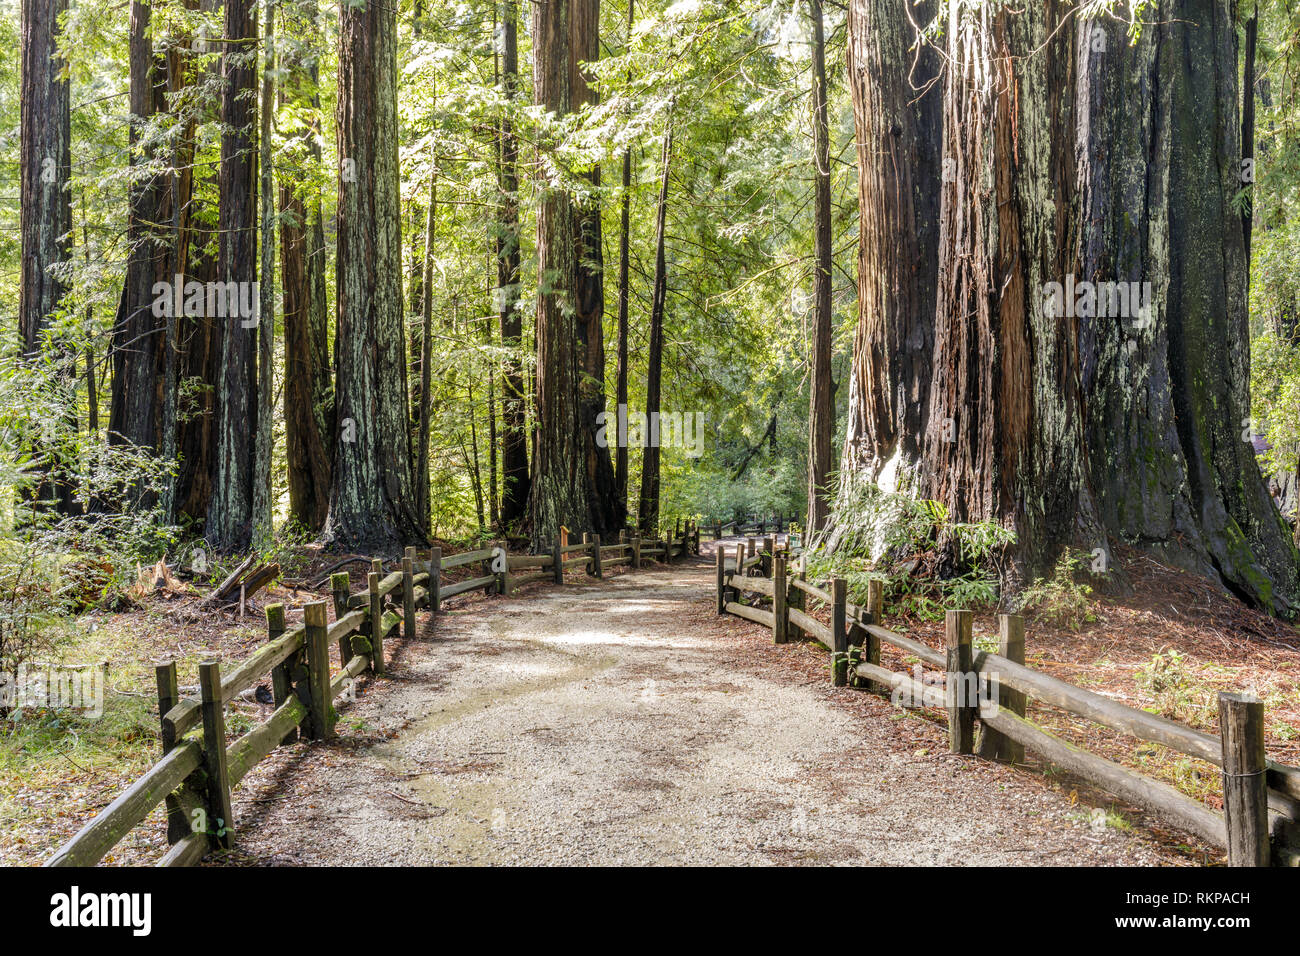 Old Coast Redwoods along the trail. - Stock Image